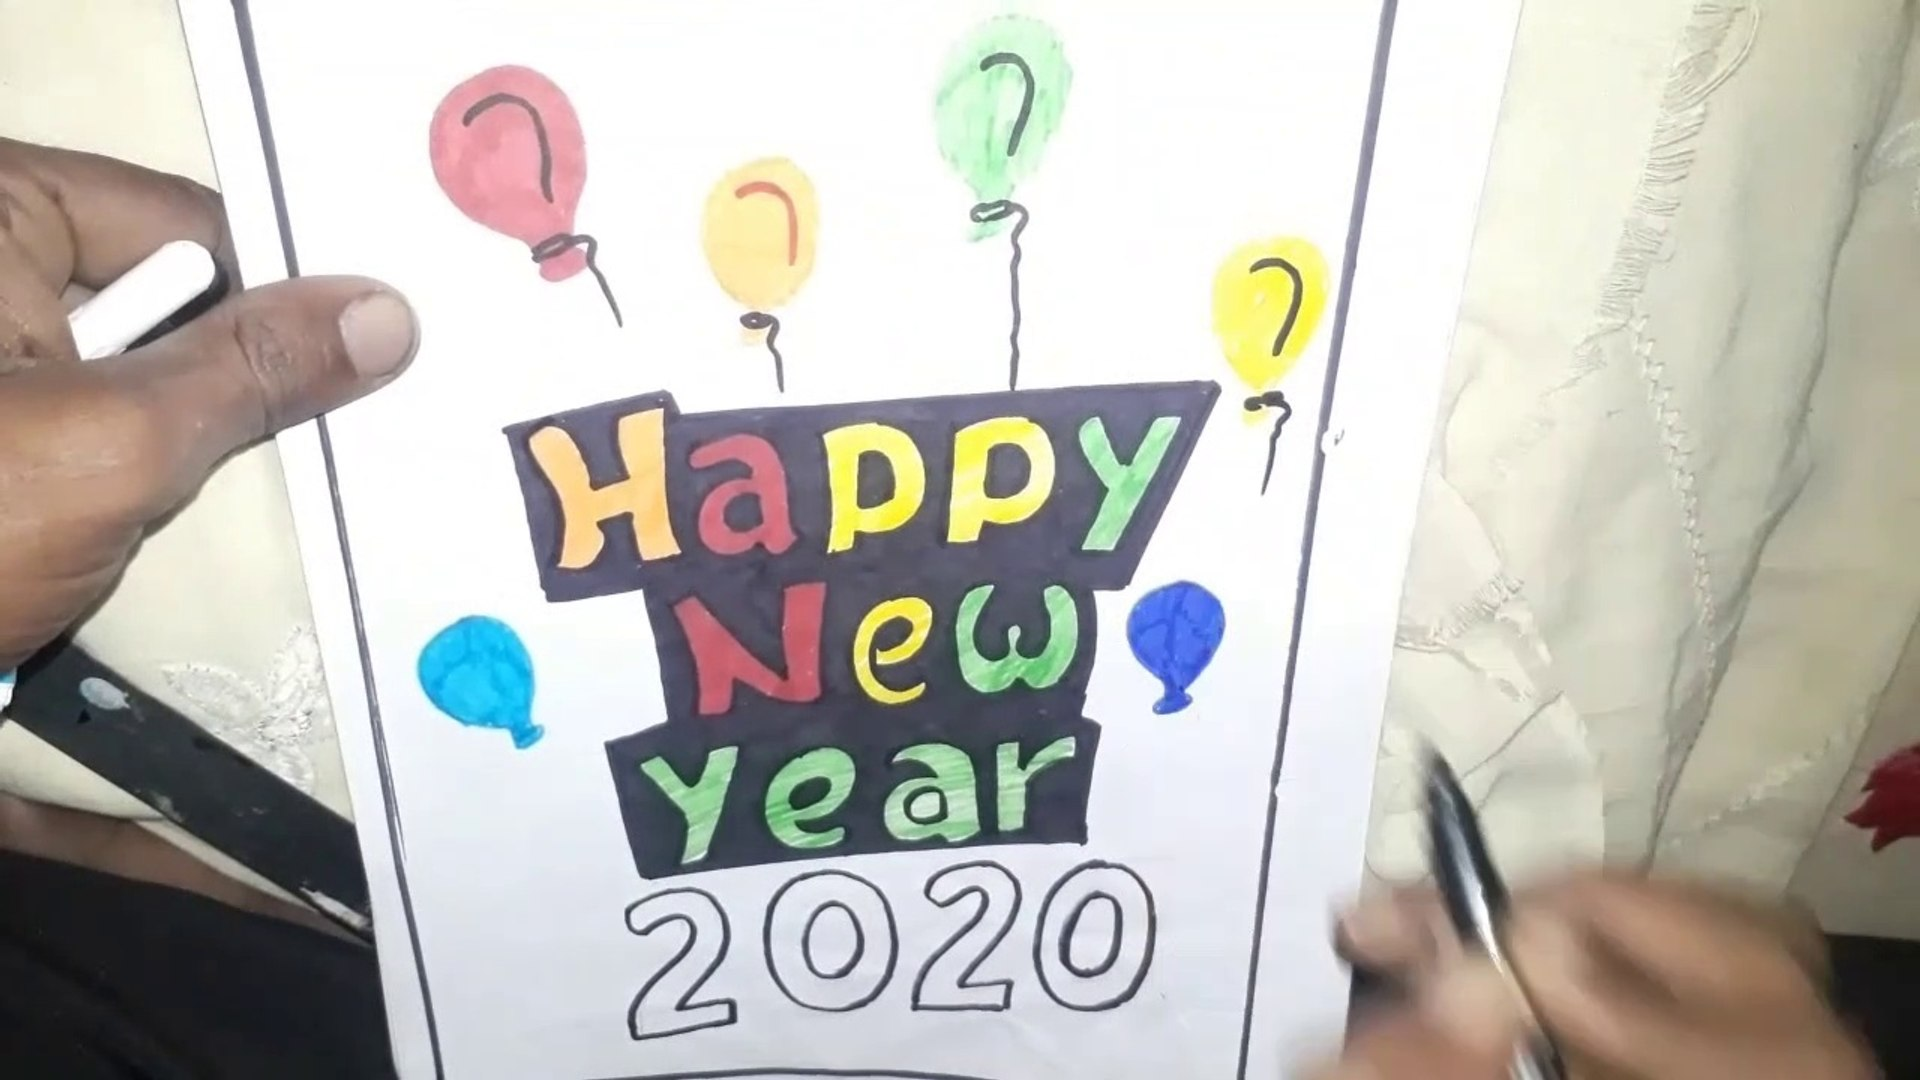 happy new year 2020 drawing, happy new year drawing 2020, happy new year drawing card, how to draw h